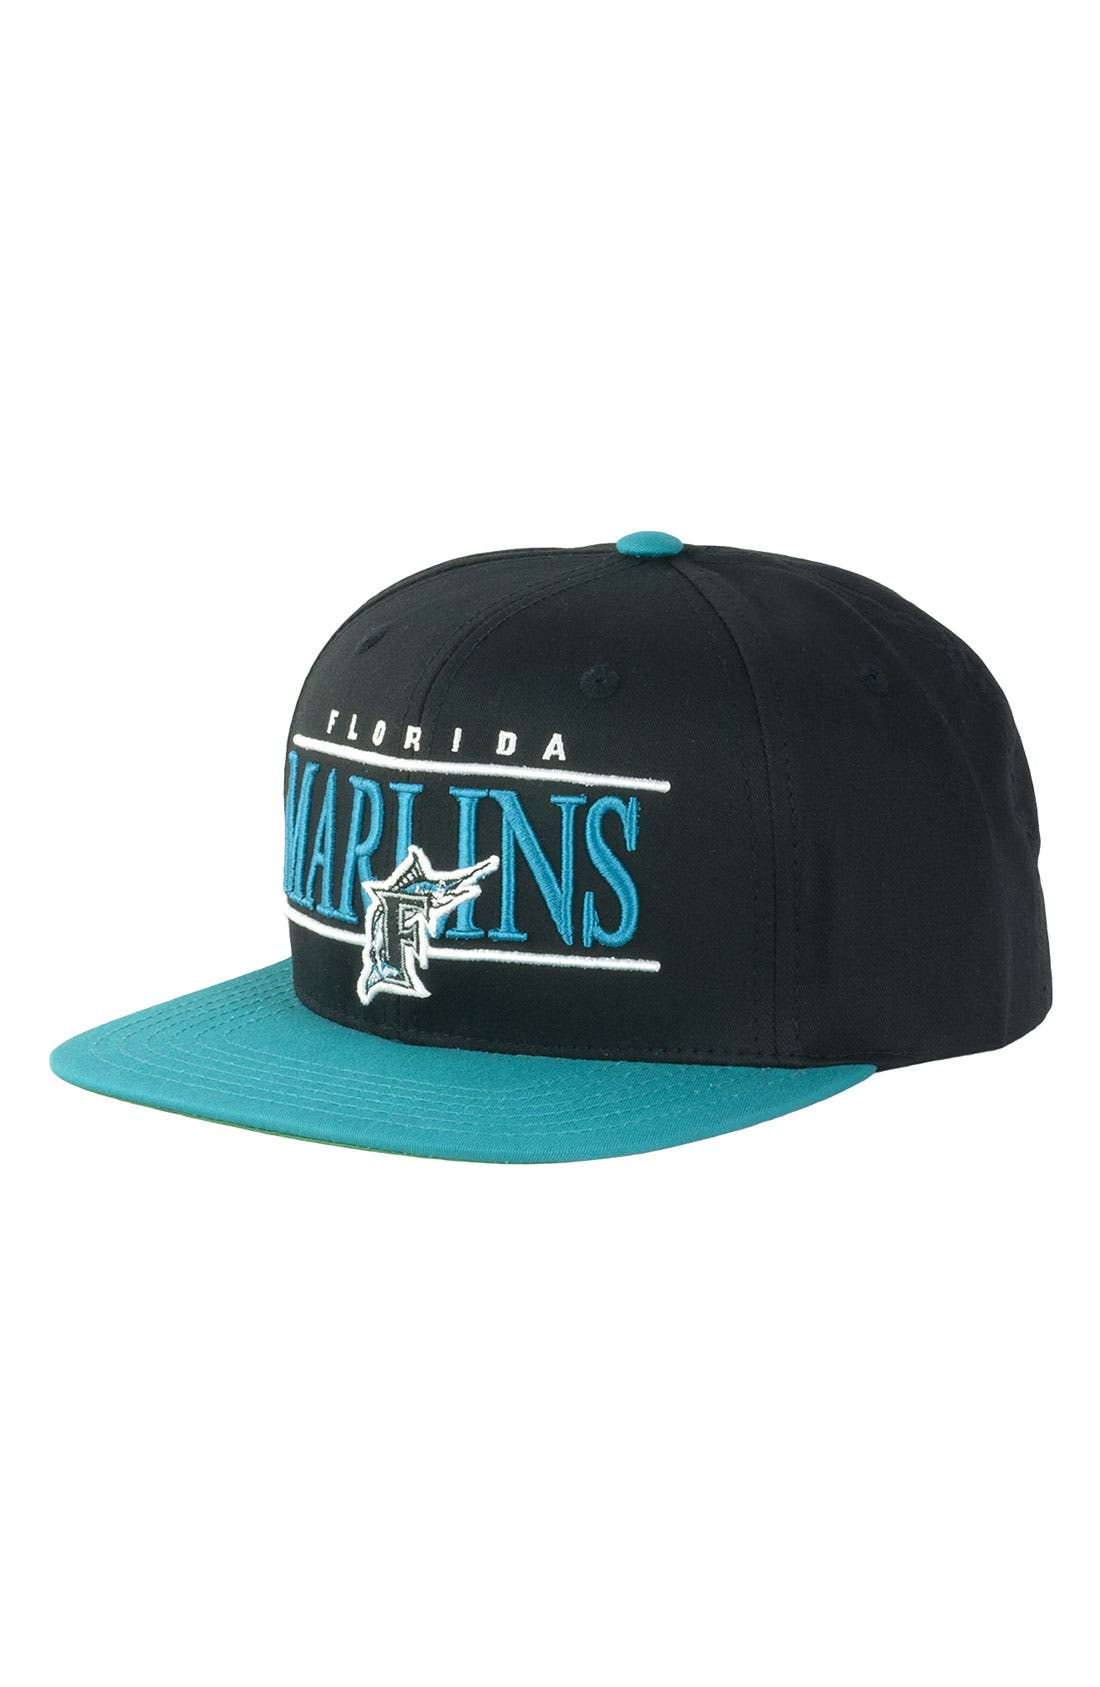 Main Image - American Needle 'Miami Marlins - Nineties' Twill Snapback Baseball Cap